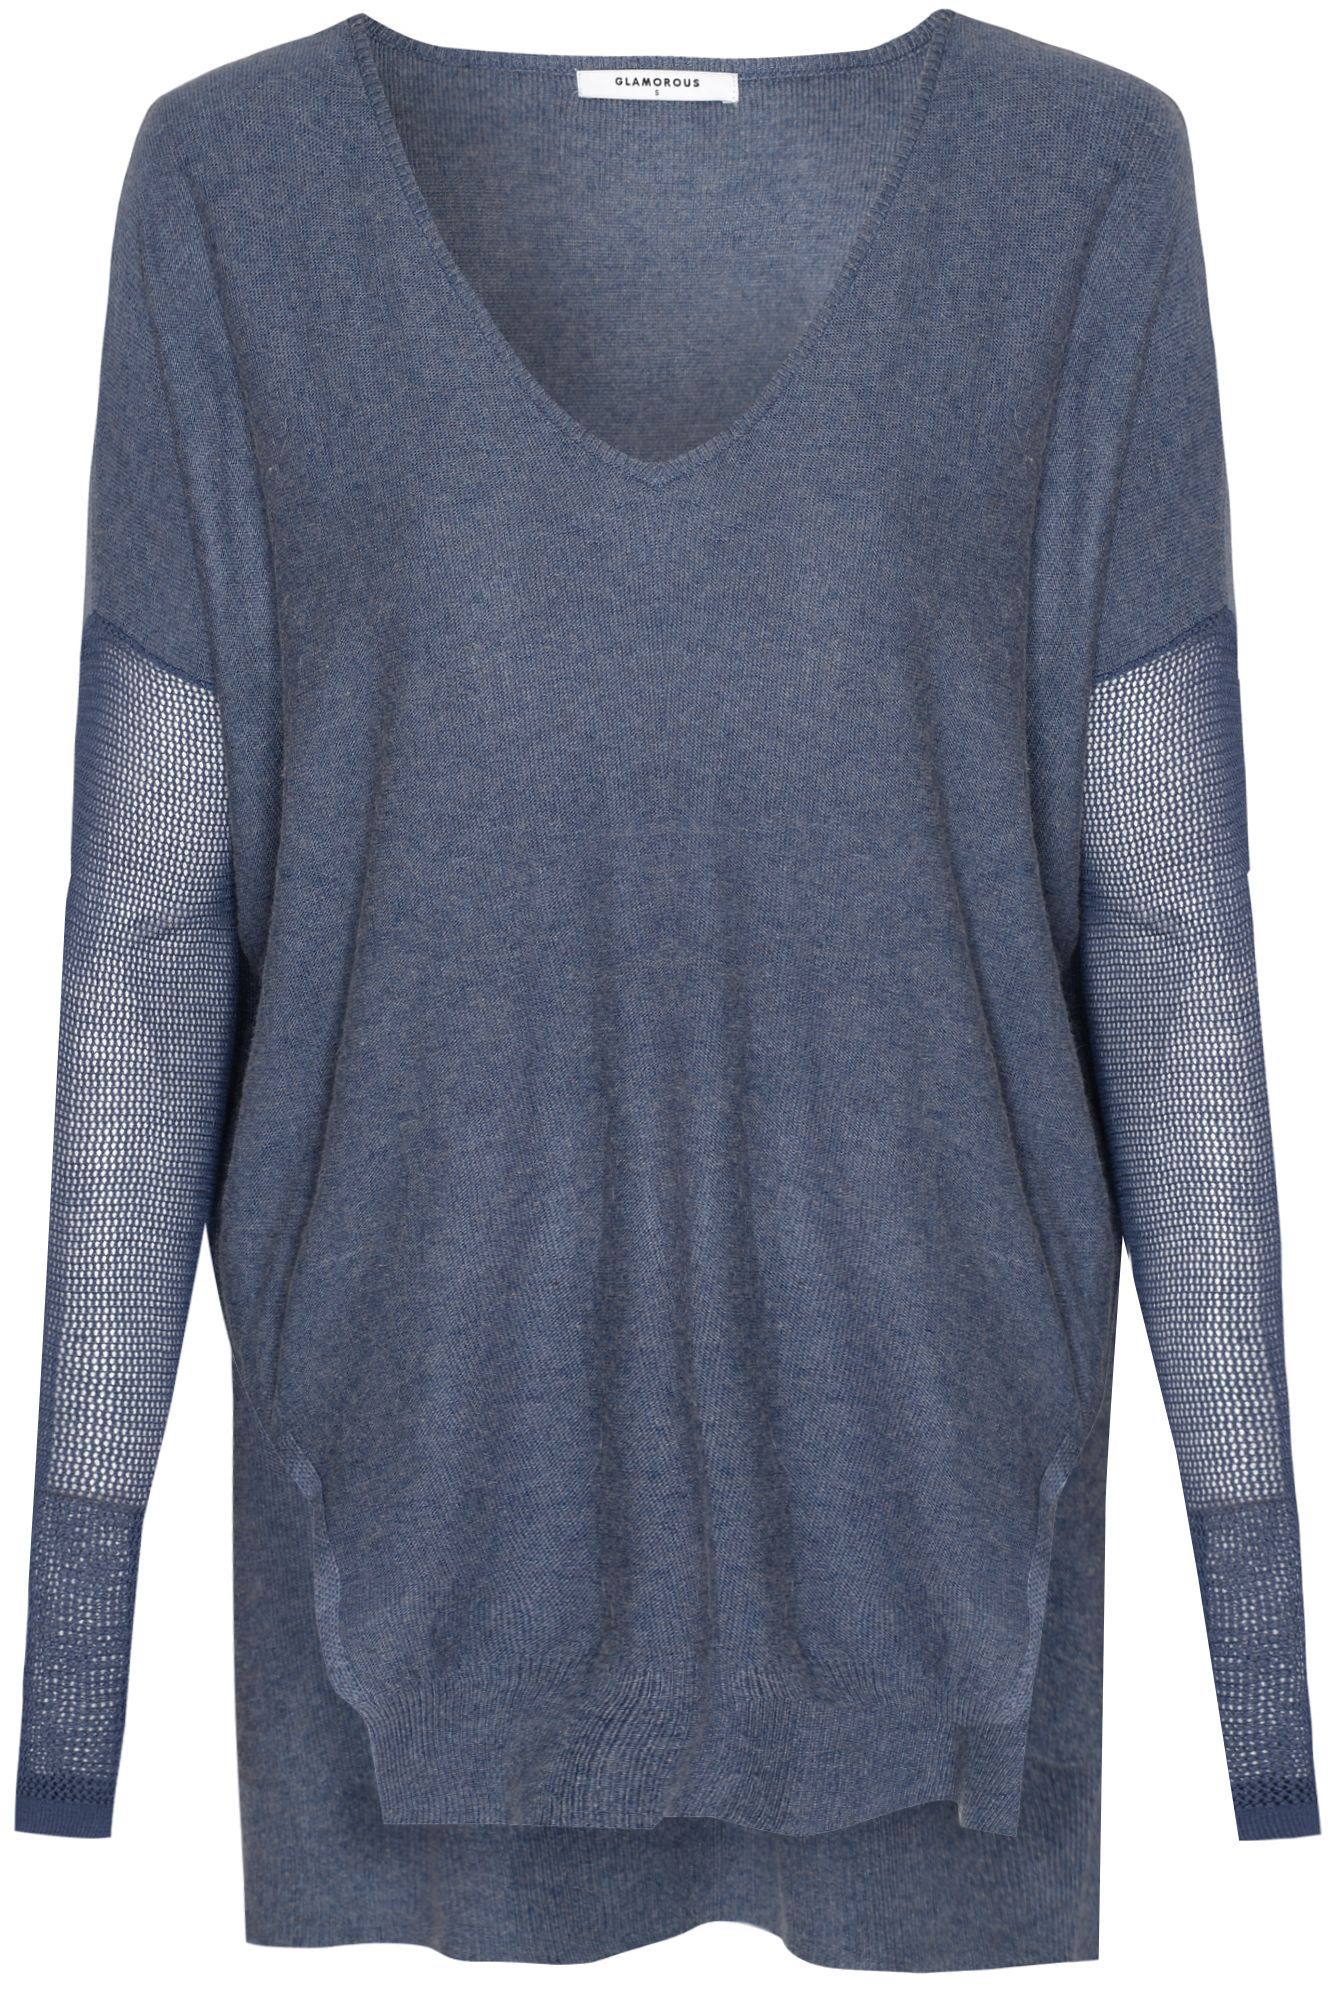 Alice & You Alice & You Long Sleeved Jumper, Navy